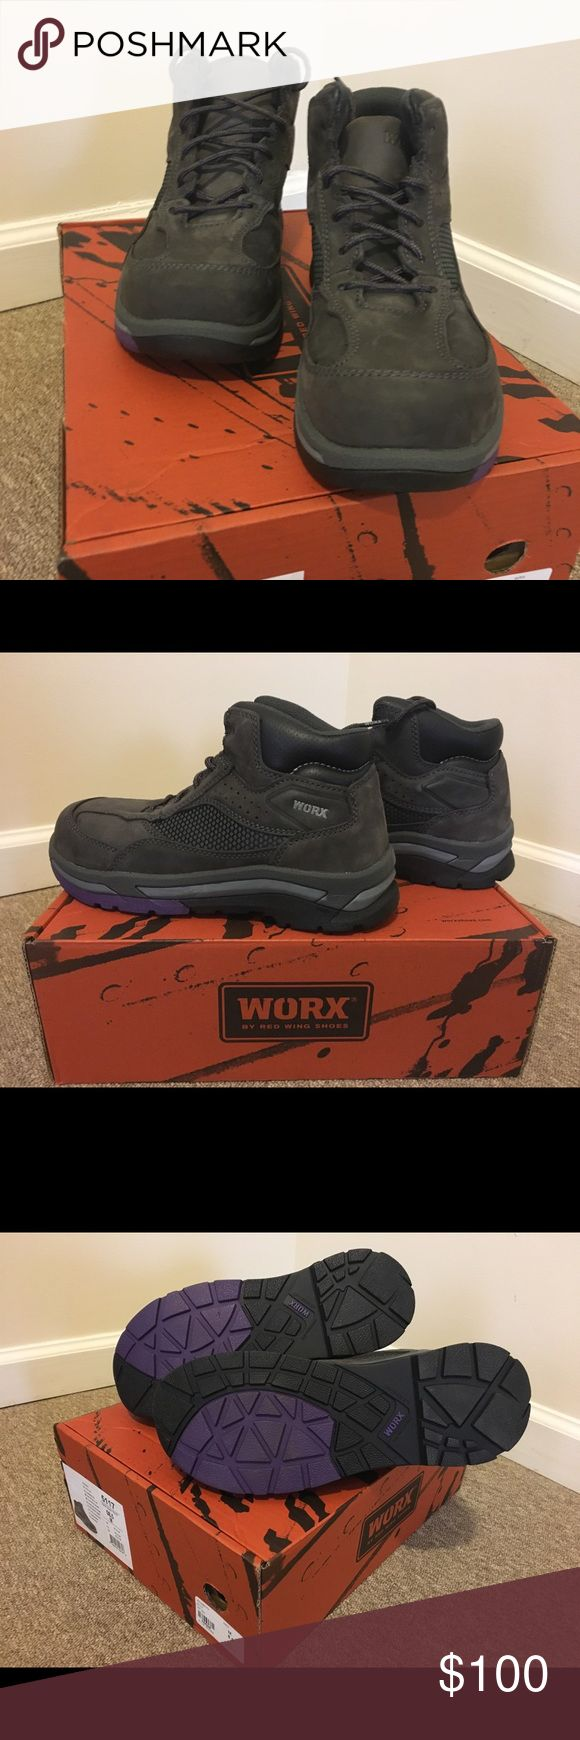 Redwing Work Boots Composite Toe Brand New comes with original box. They feature: Electrical Hazard Composite Toe Memory Foam insoles Purple and Gray from the Worx collection by Red Wing. Size:8.5 M Red Wing Shoes Combat & Moto Boots